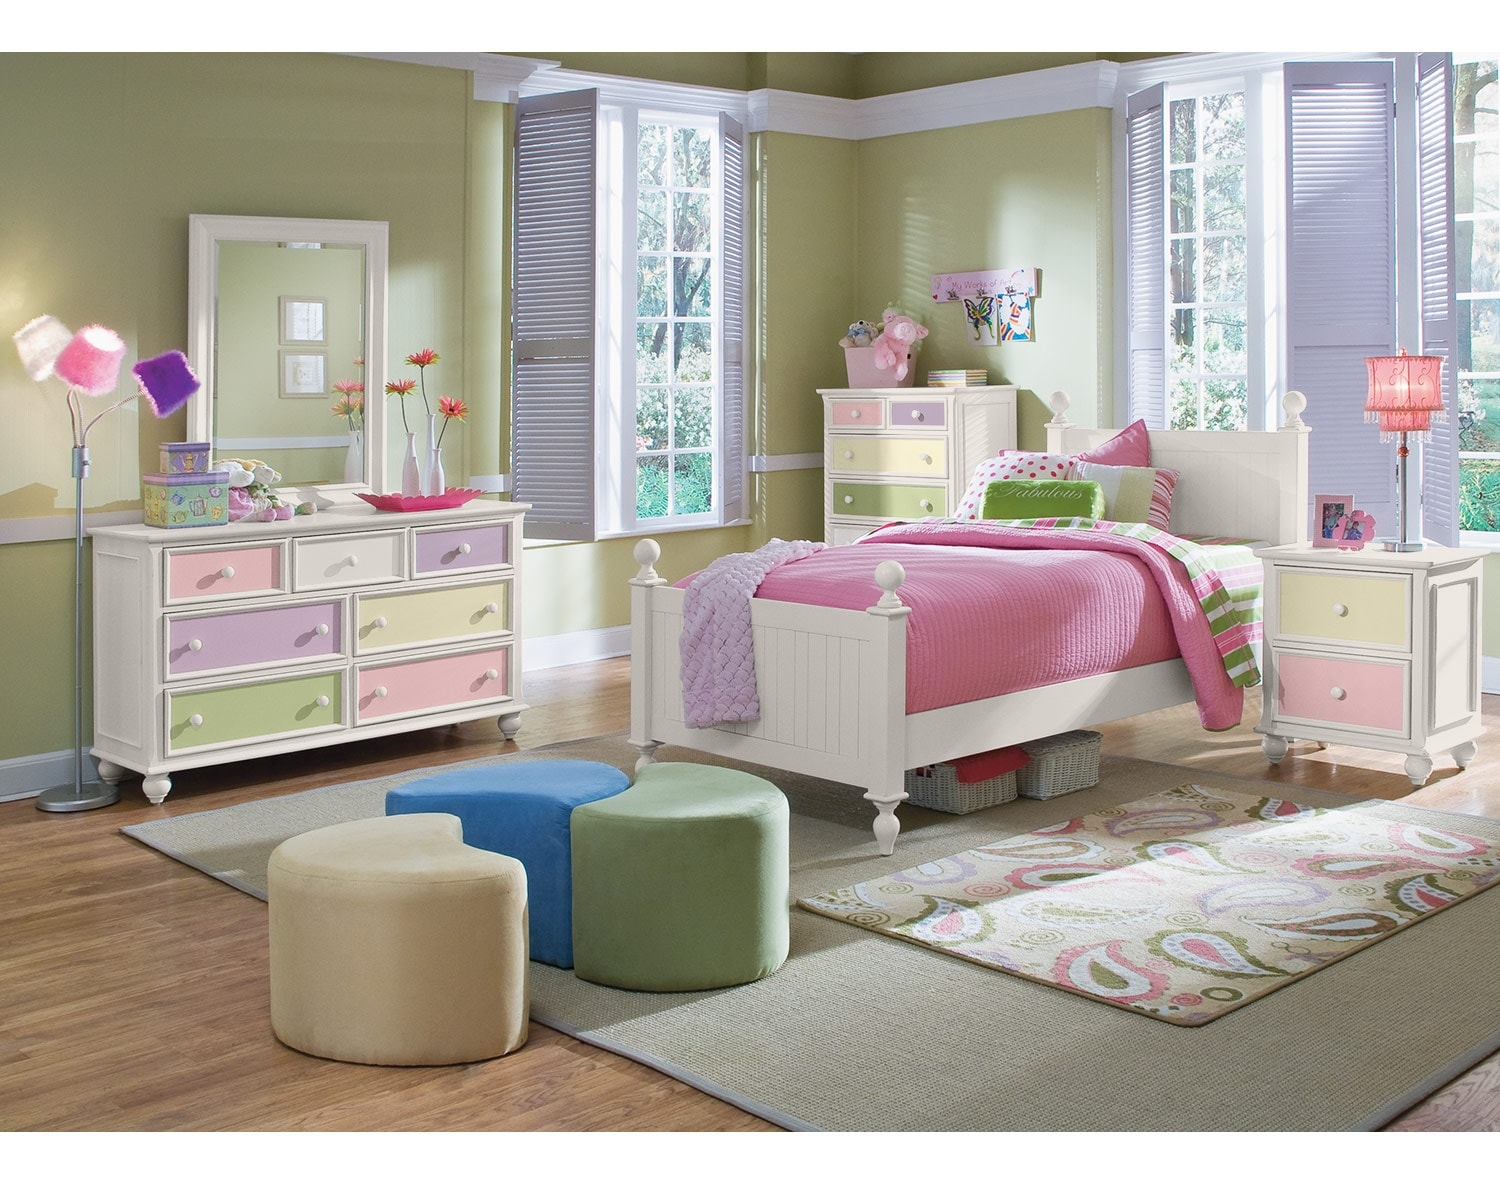 The Colorworks Bedroom Collection